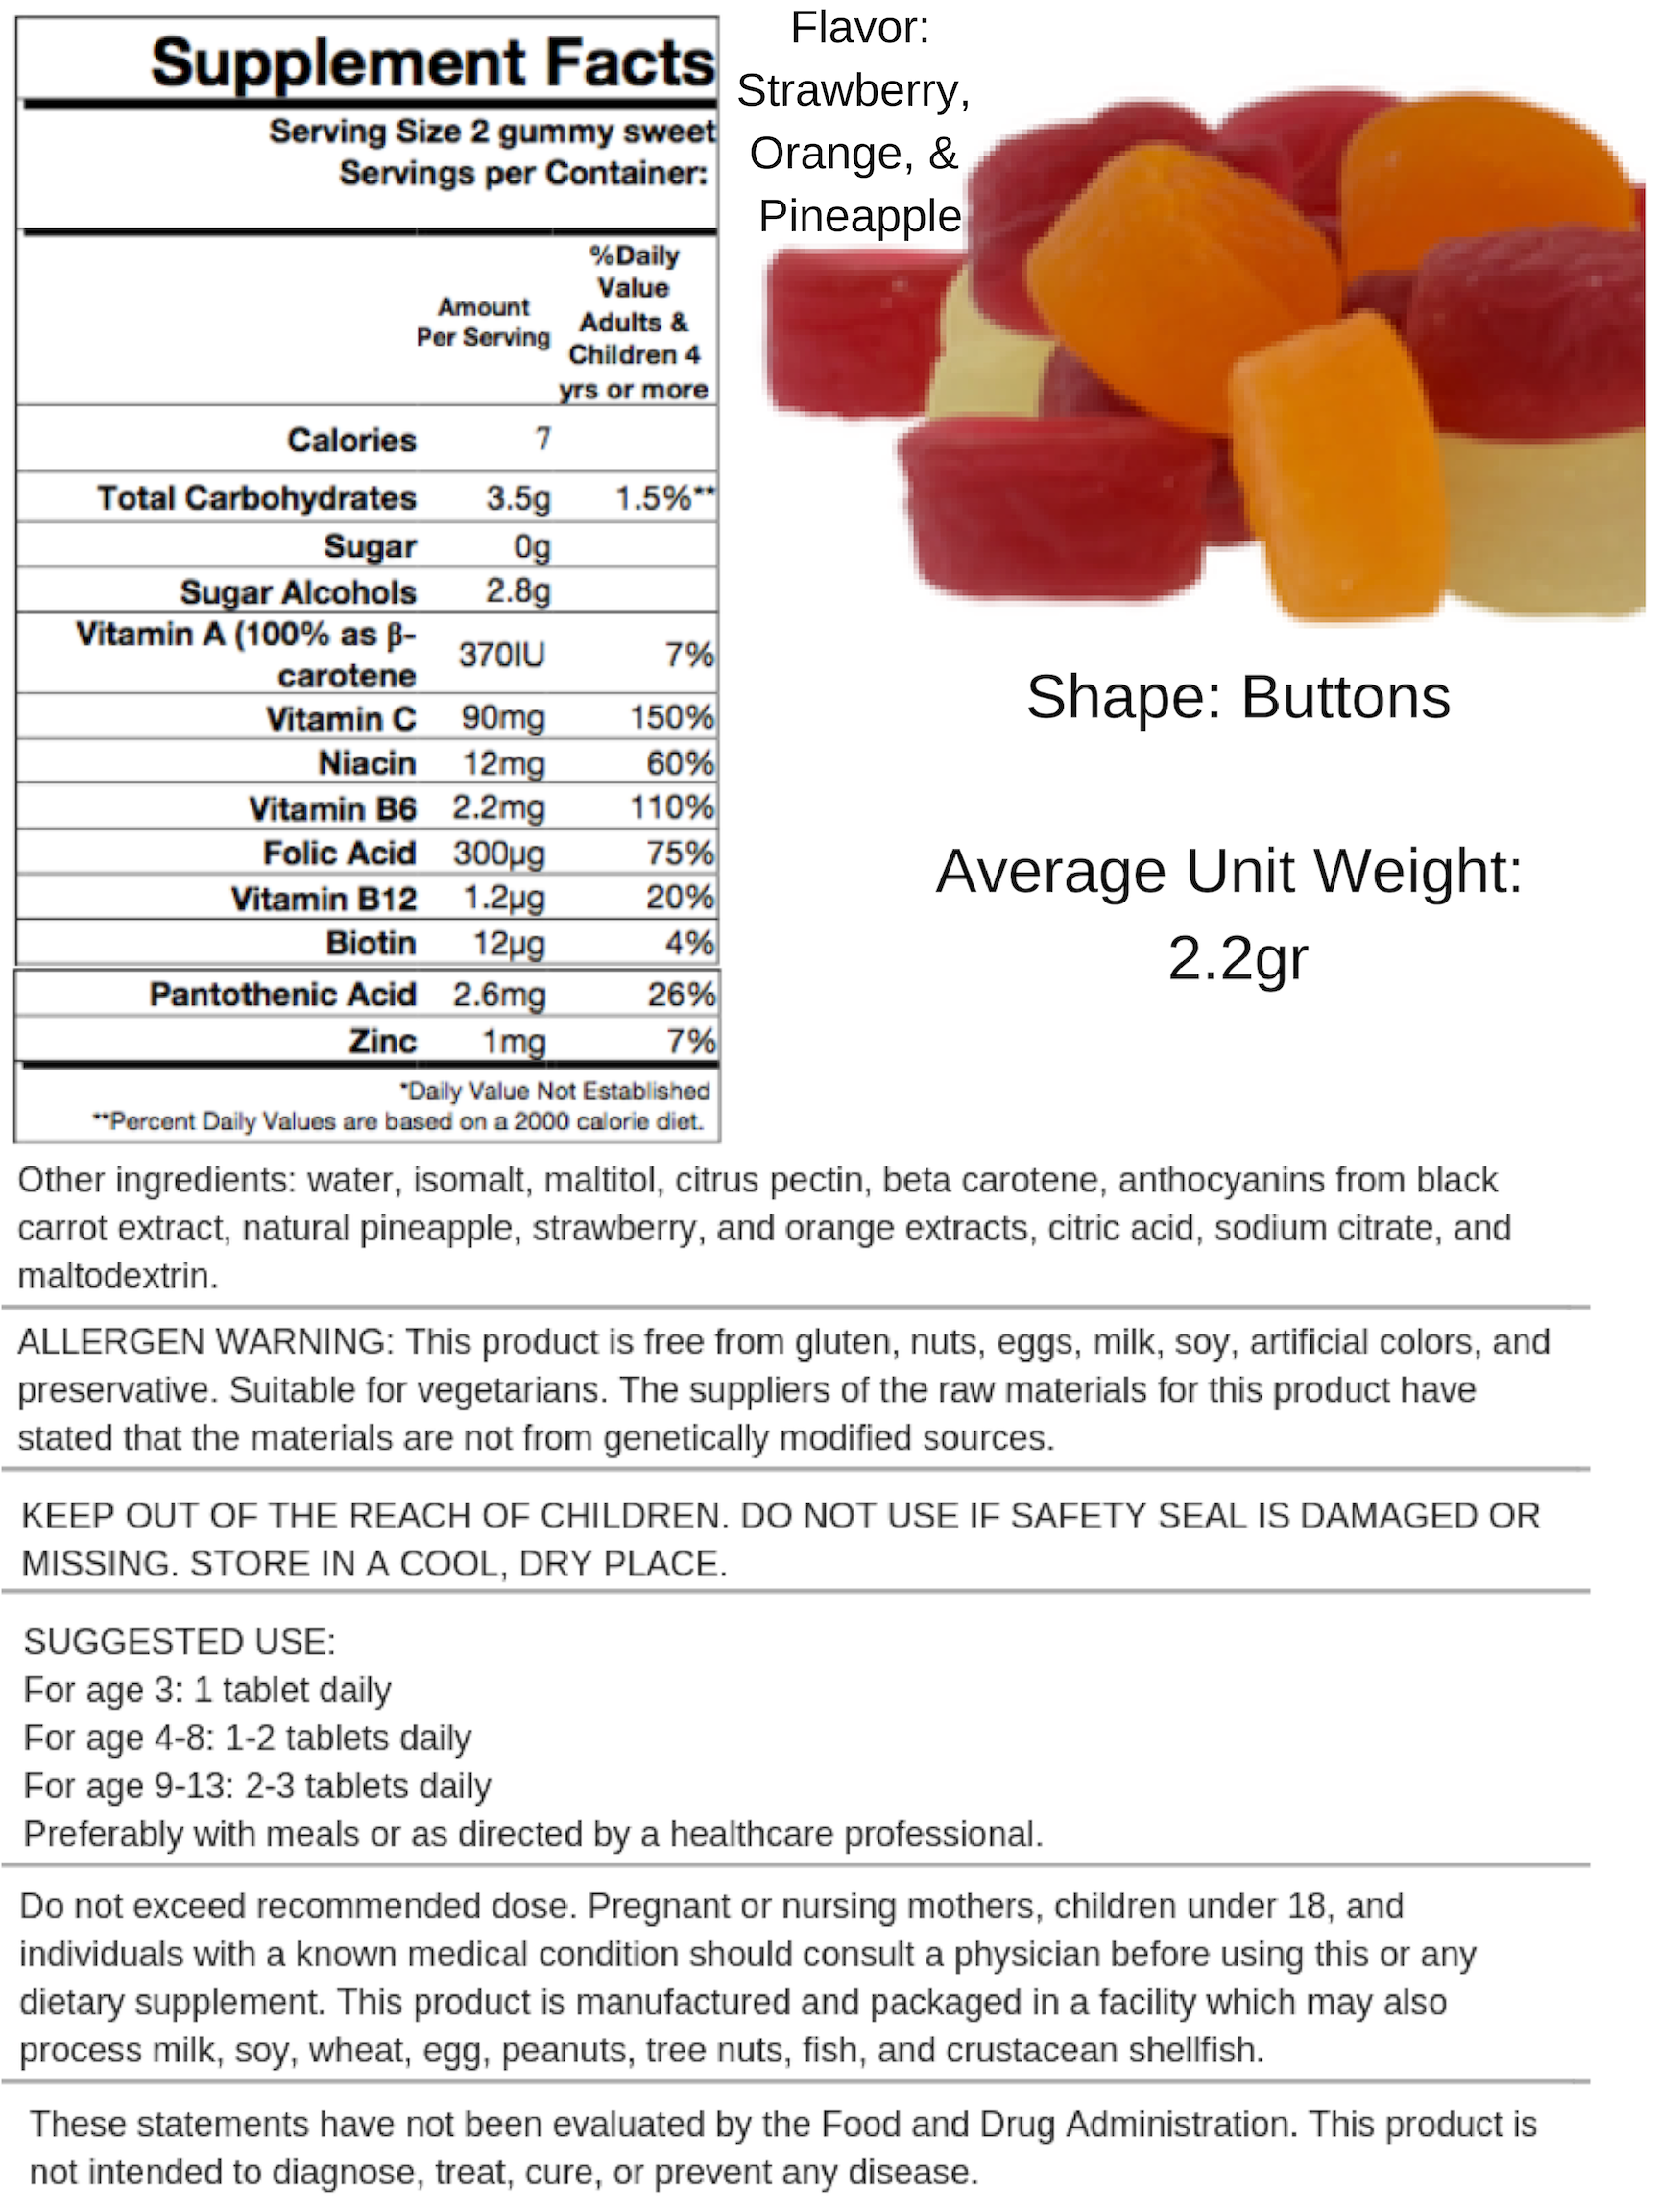 Sugar Free Multivitamin - Mixed Flavors